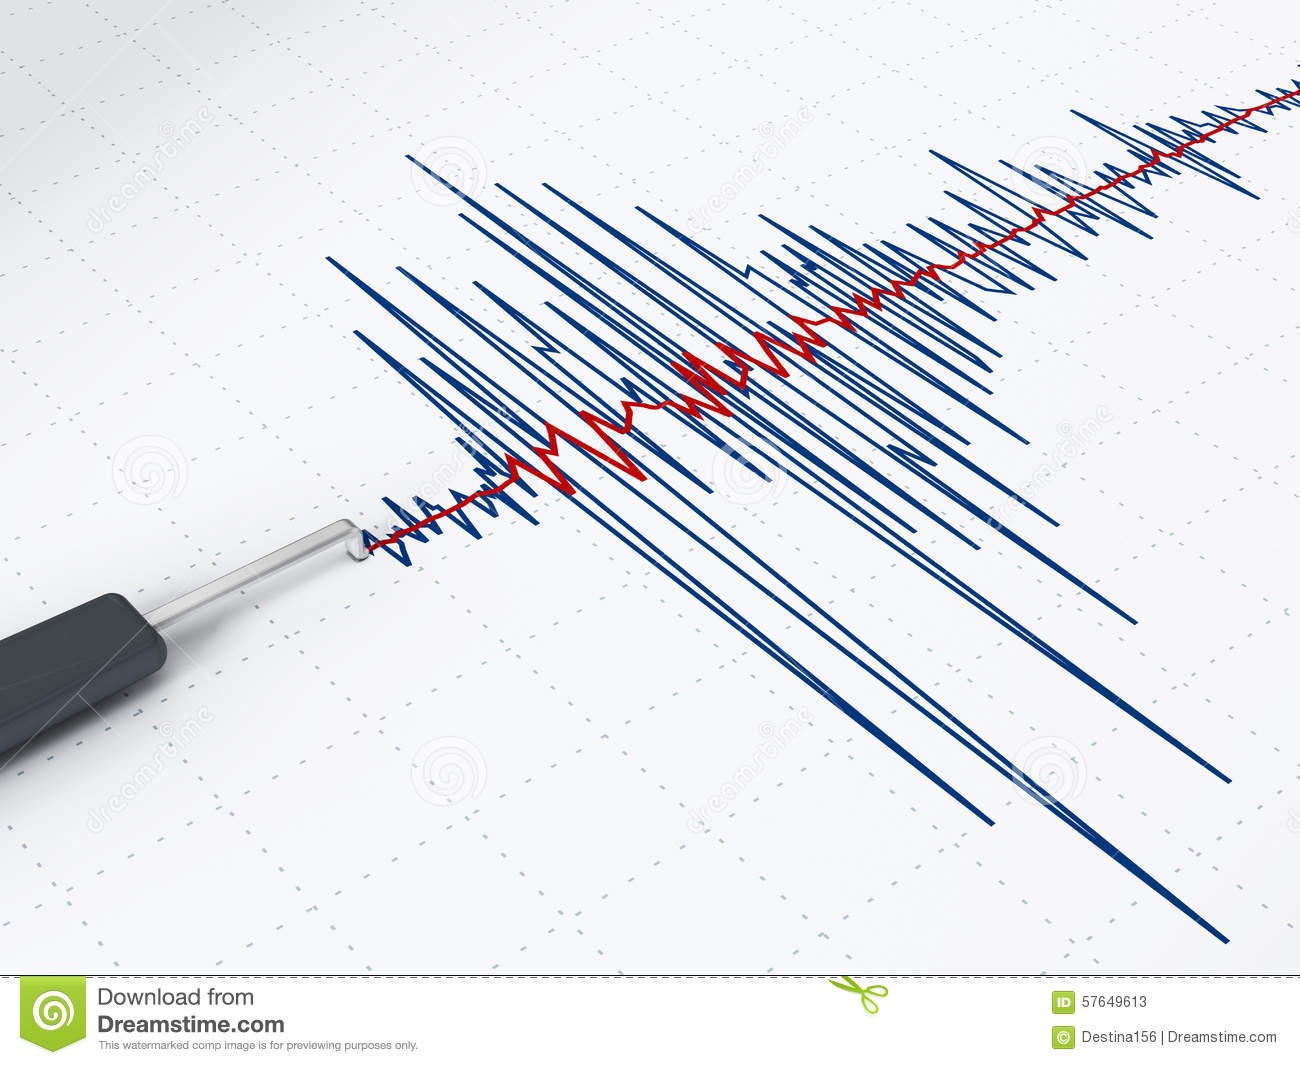 seismic activity graph stock illustration image 57649613 earthquake clipart png earthquake clipart free